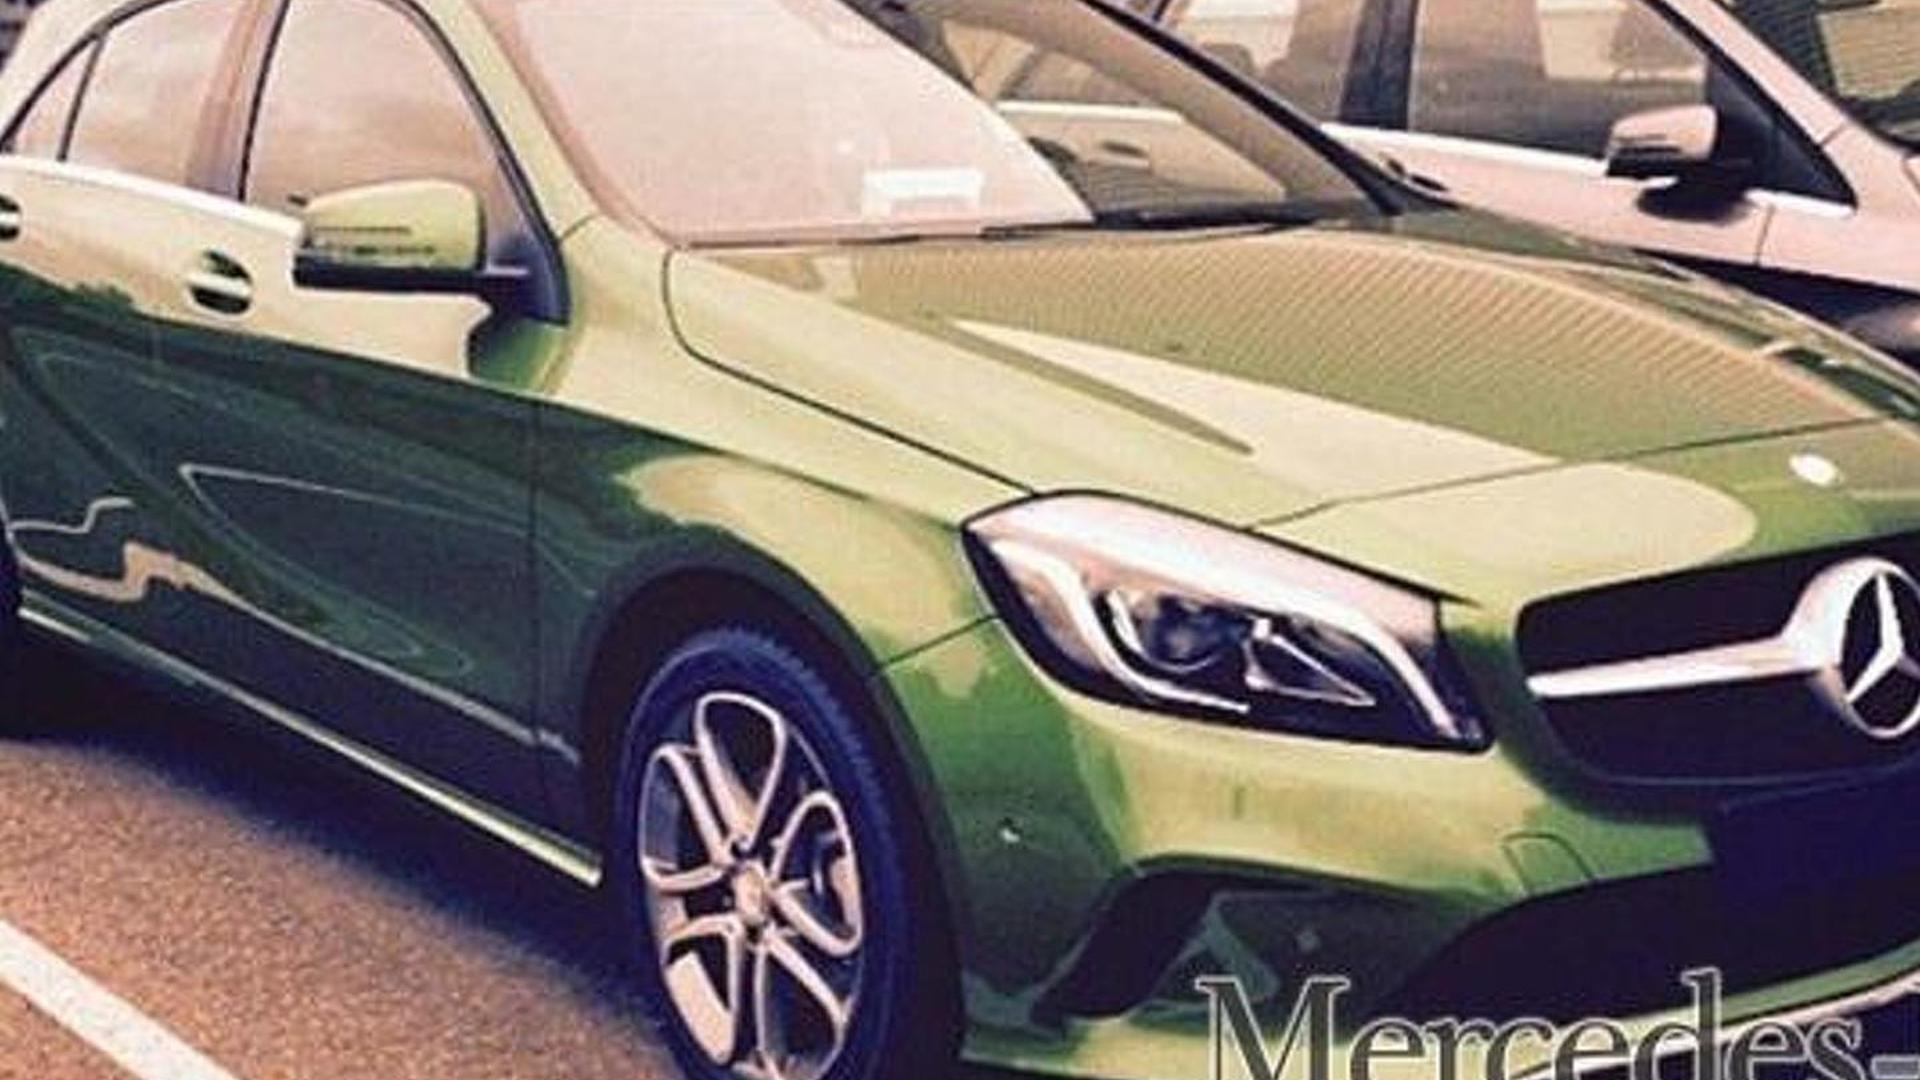 Mercedes-Benz A-Class facelift spied undisguised showing new color